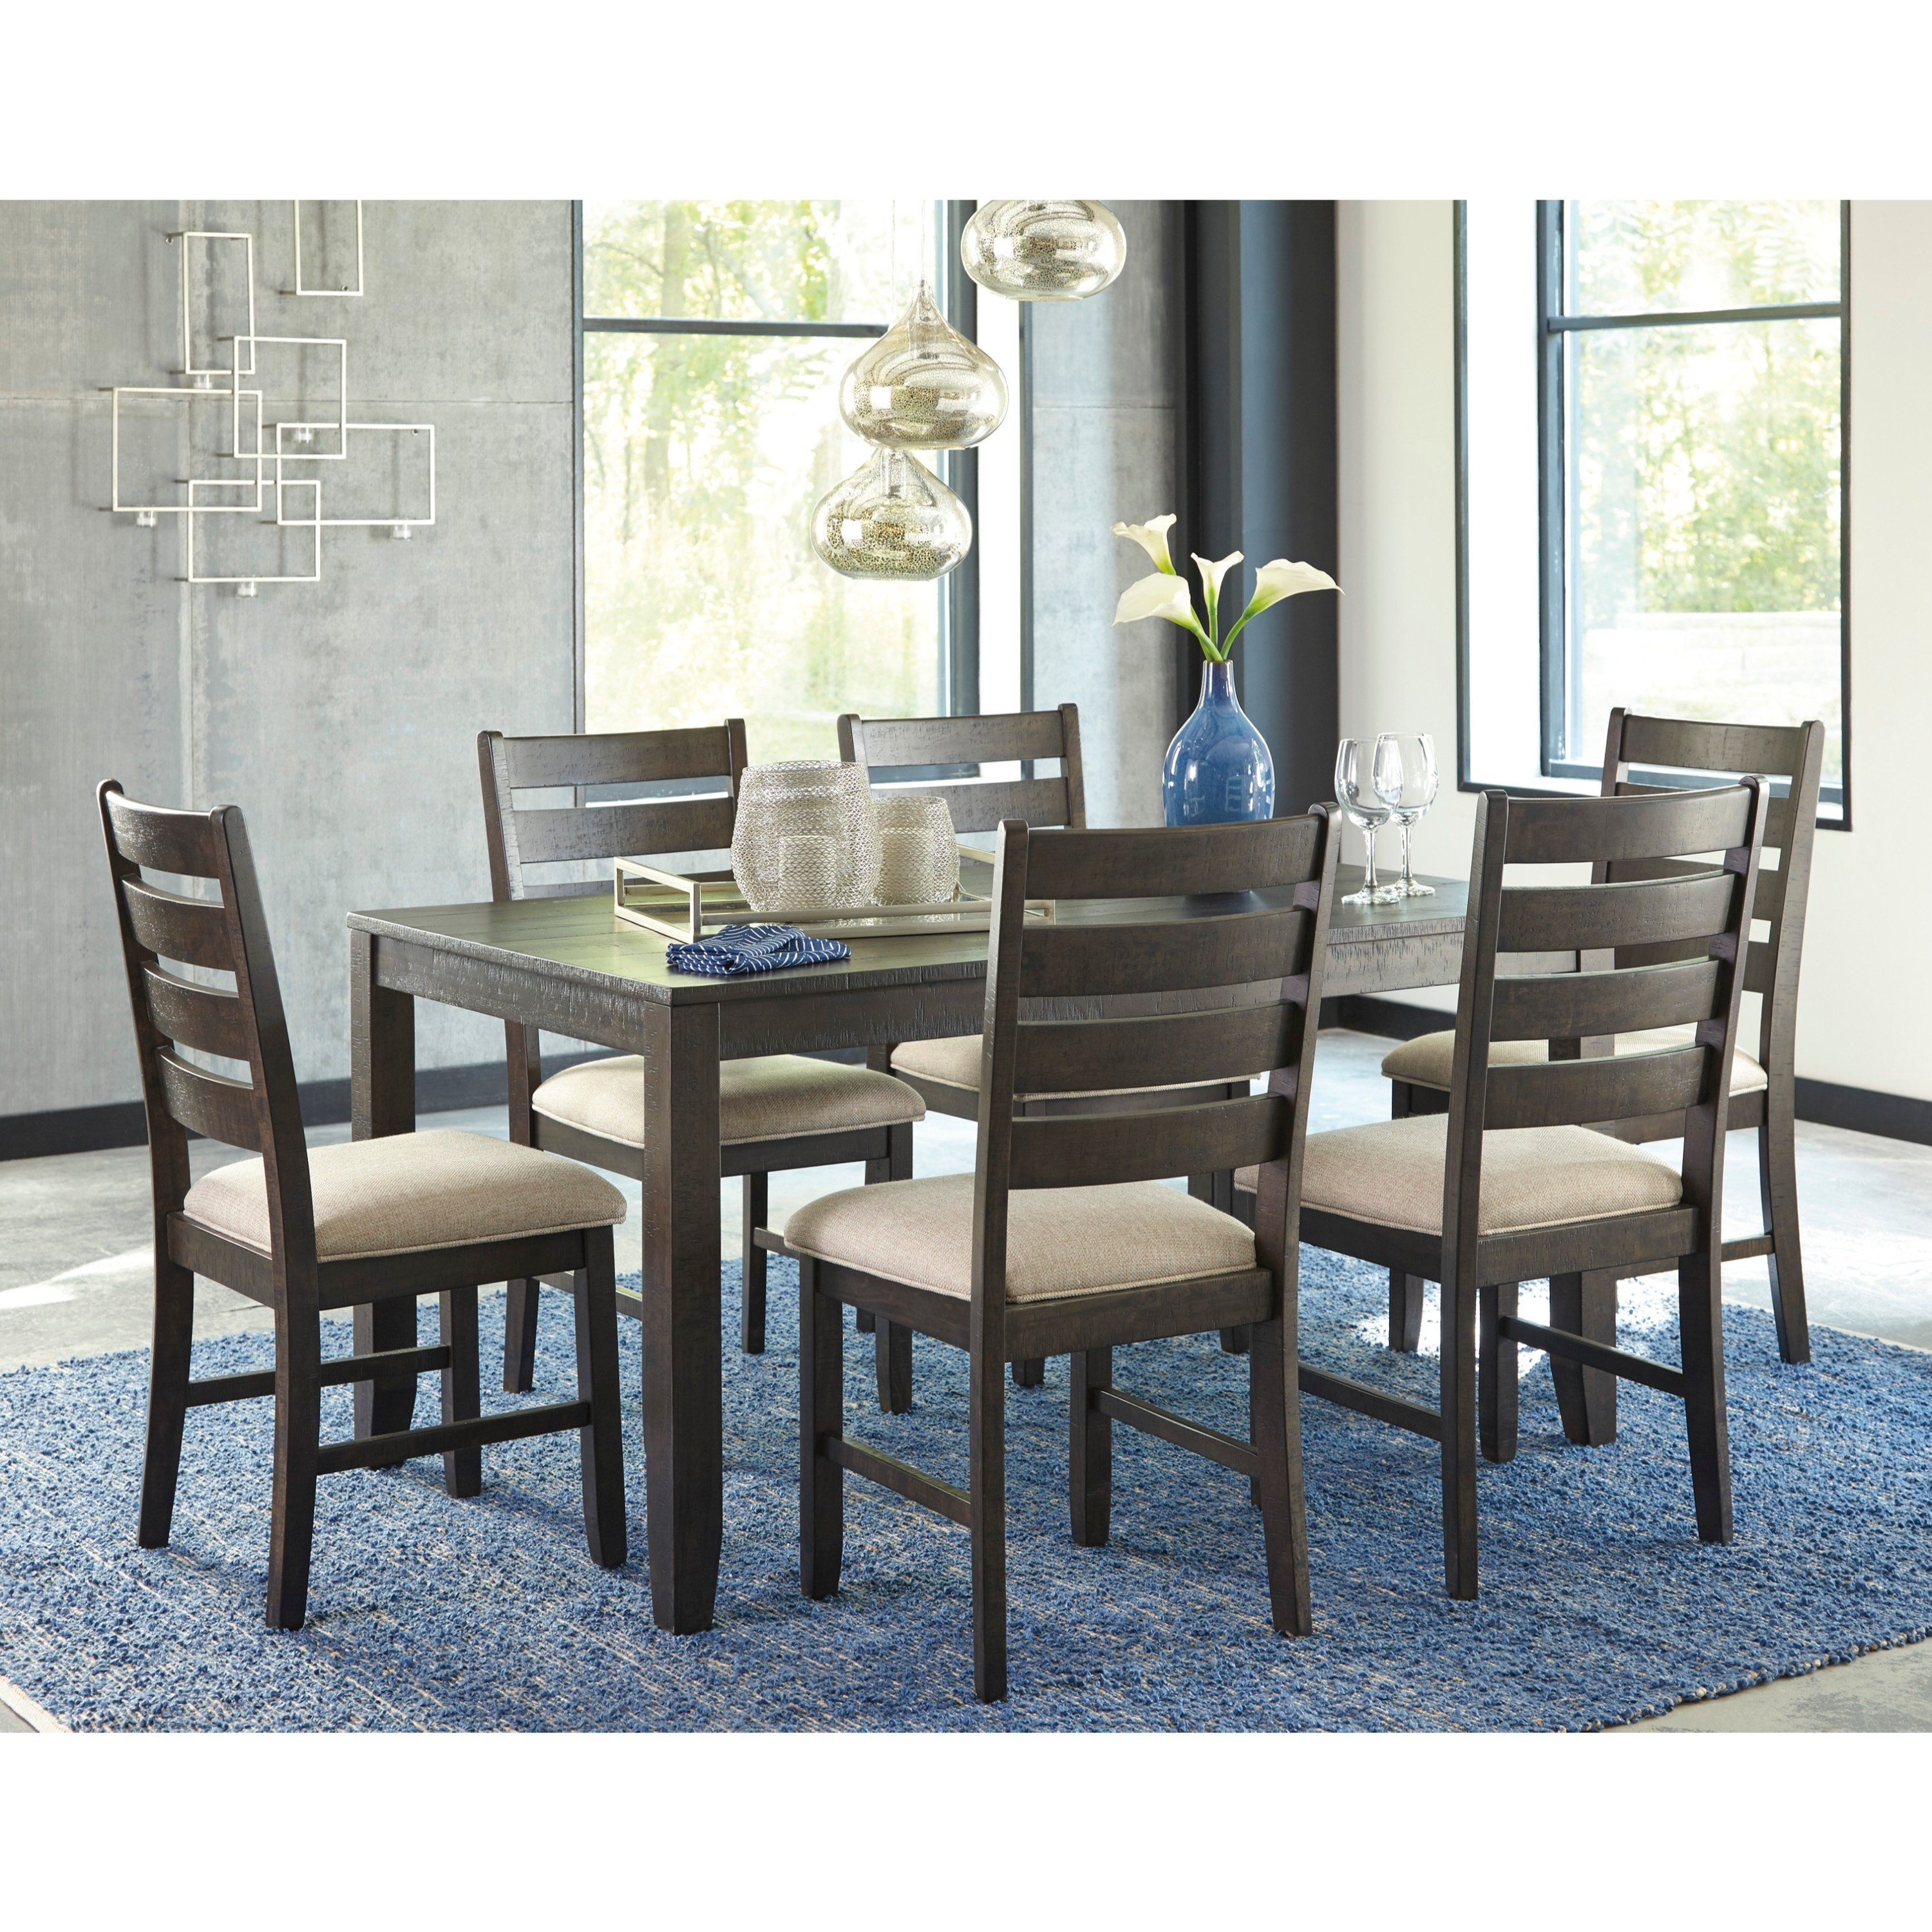 Signature Design By Ashley Rokane Brown 7 Piece Dining Room Table Set